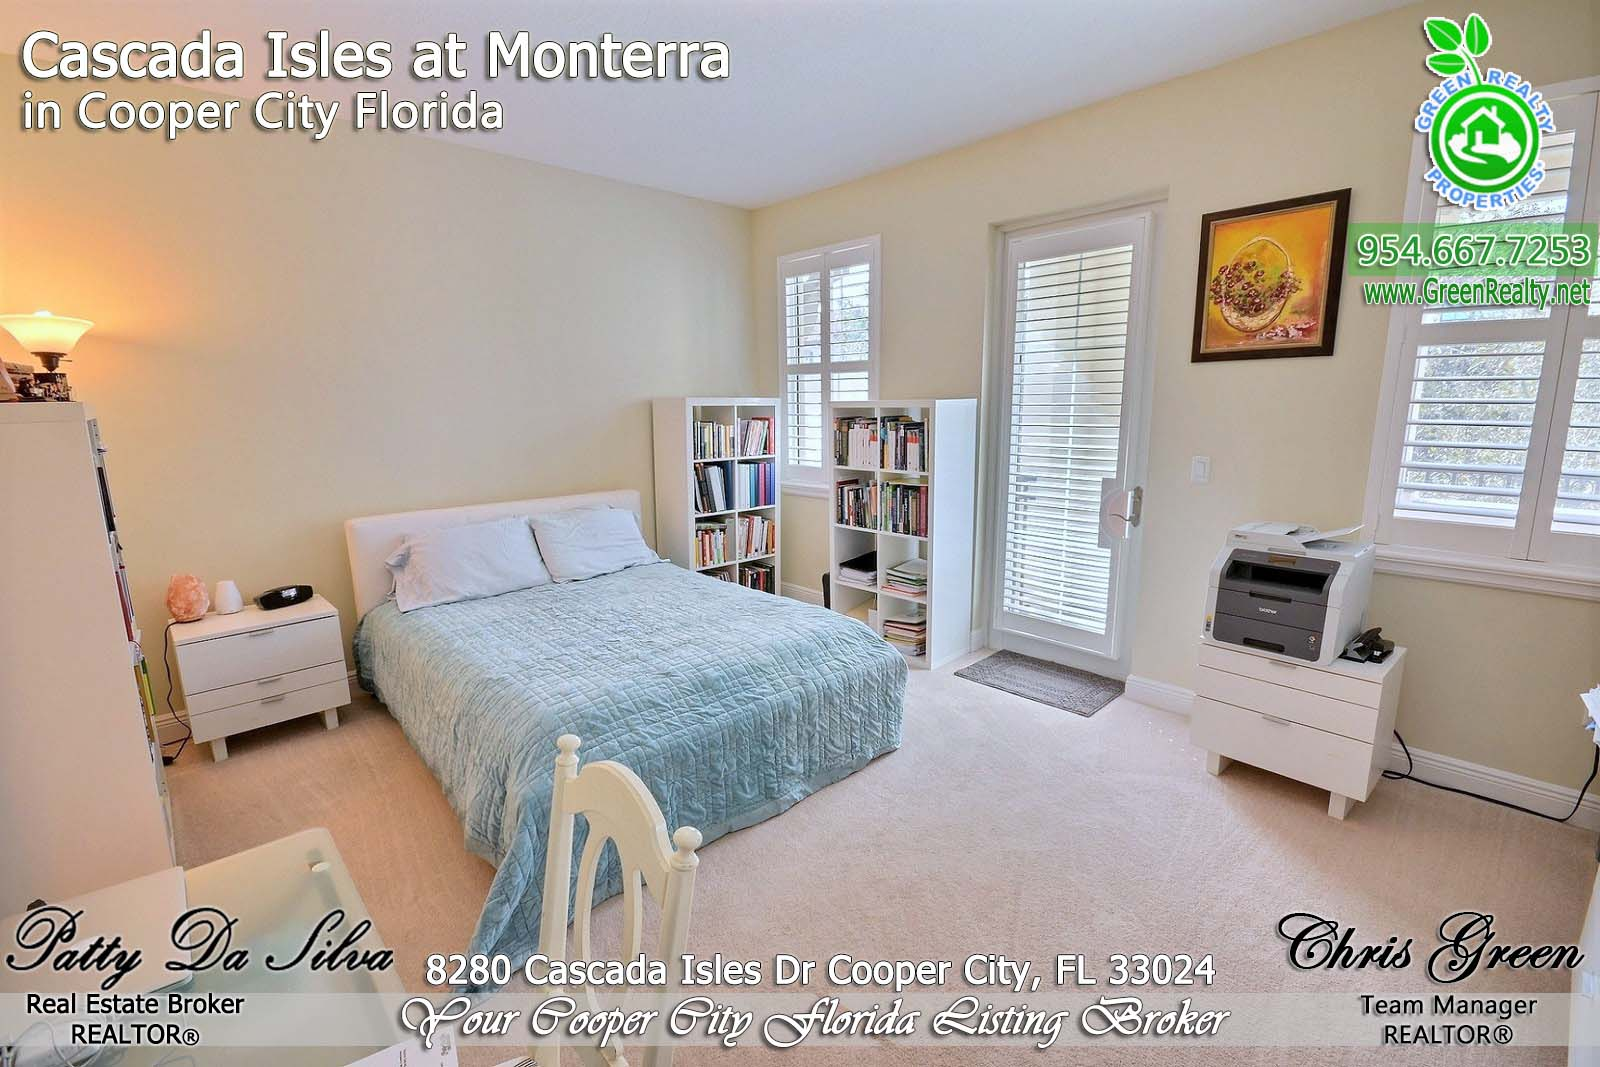 8 Homes For Sale in Cascada Isles (5)